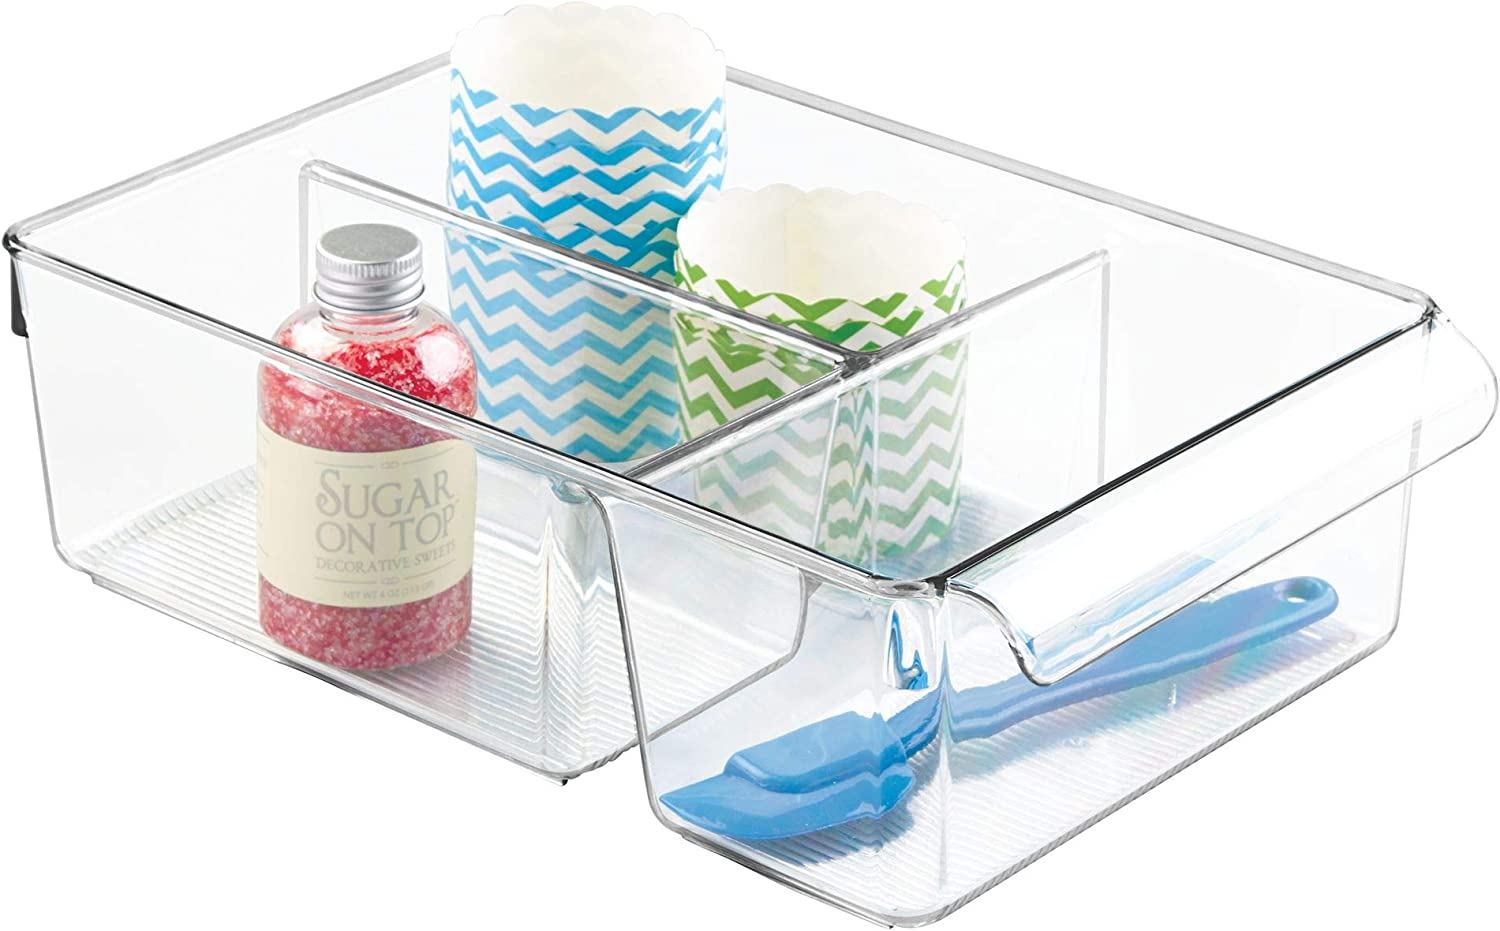 """iDesign Linus Plastic Fridge and Freezer Divided Storage Organizer Bin with Handle, Clear Container for Food, Drinks, Produce Organization, 8"""" x 11.5"""" x 3.5"""" - Clear"""